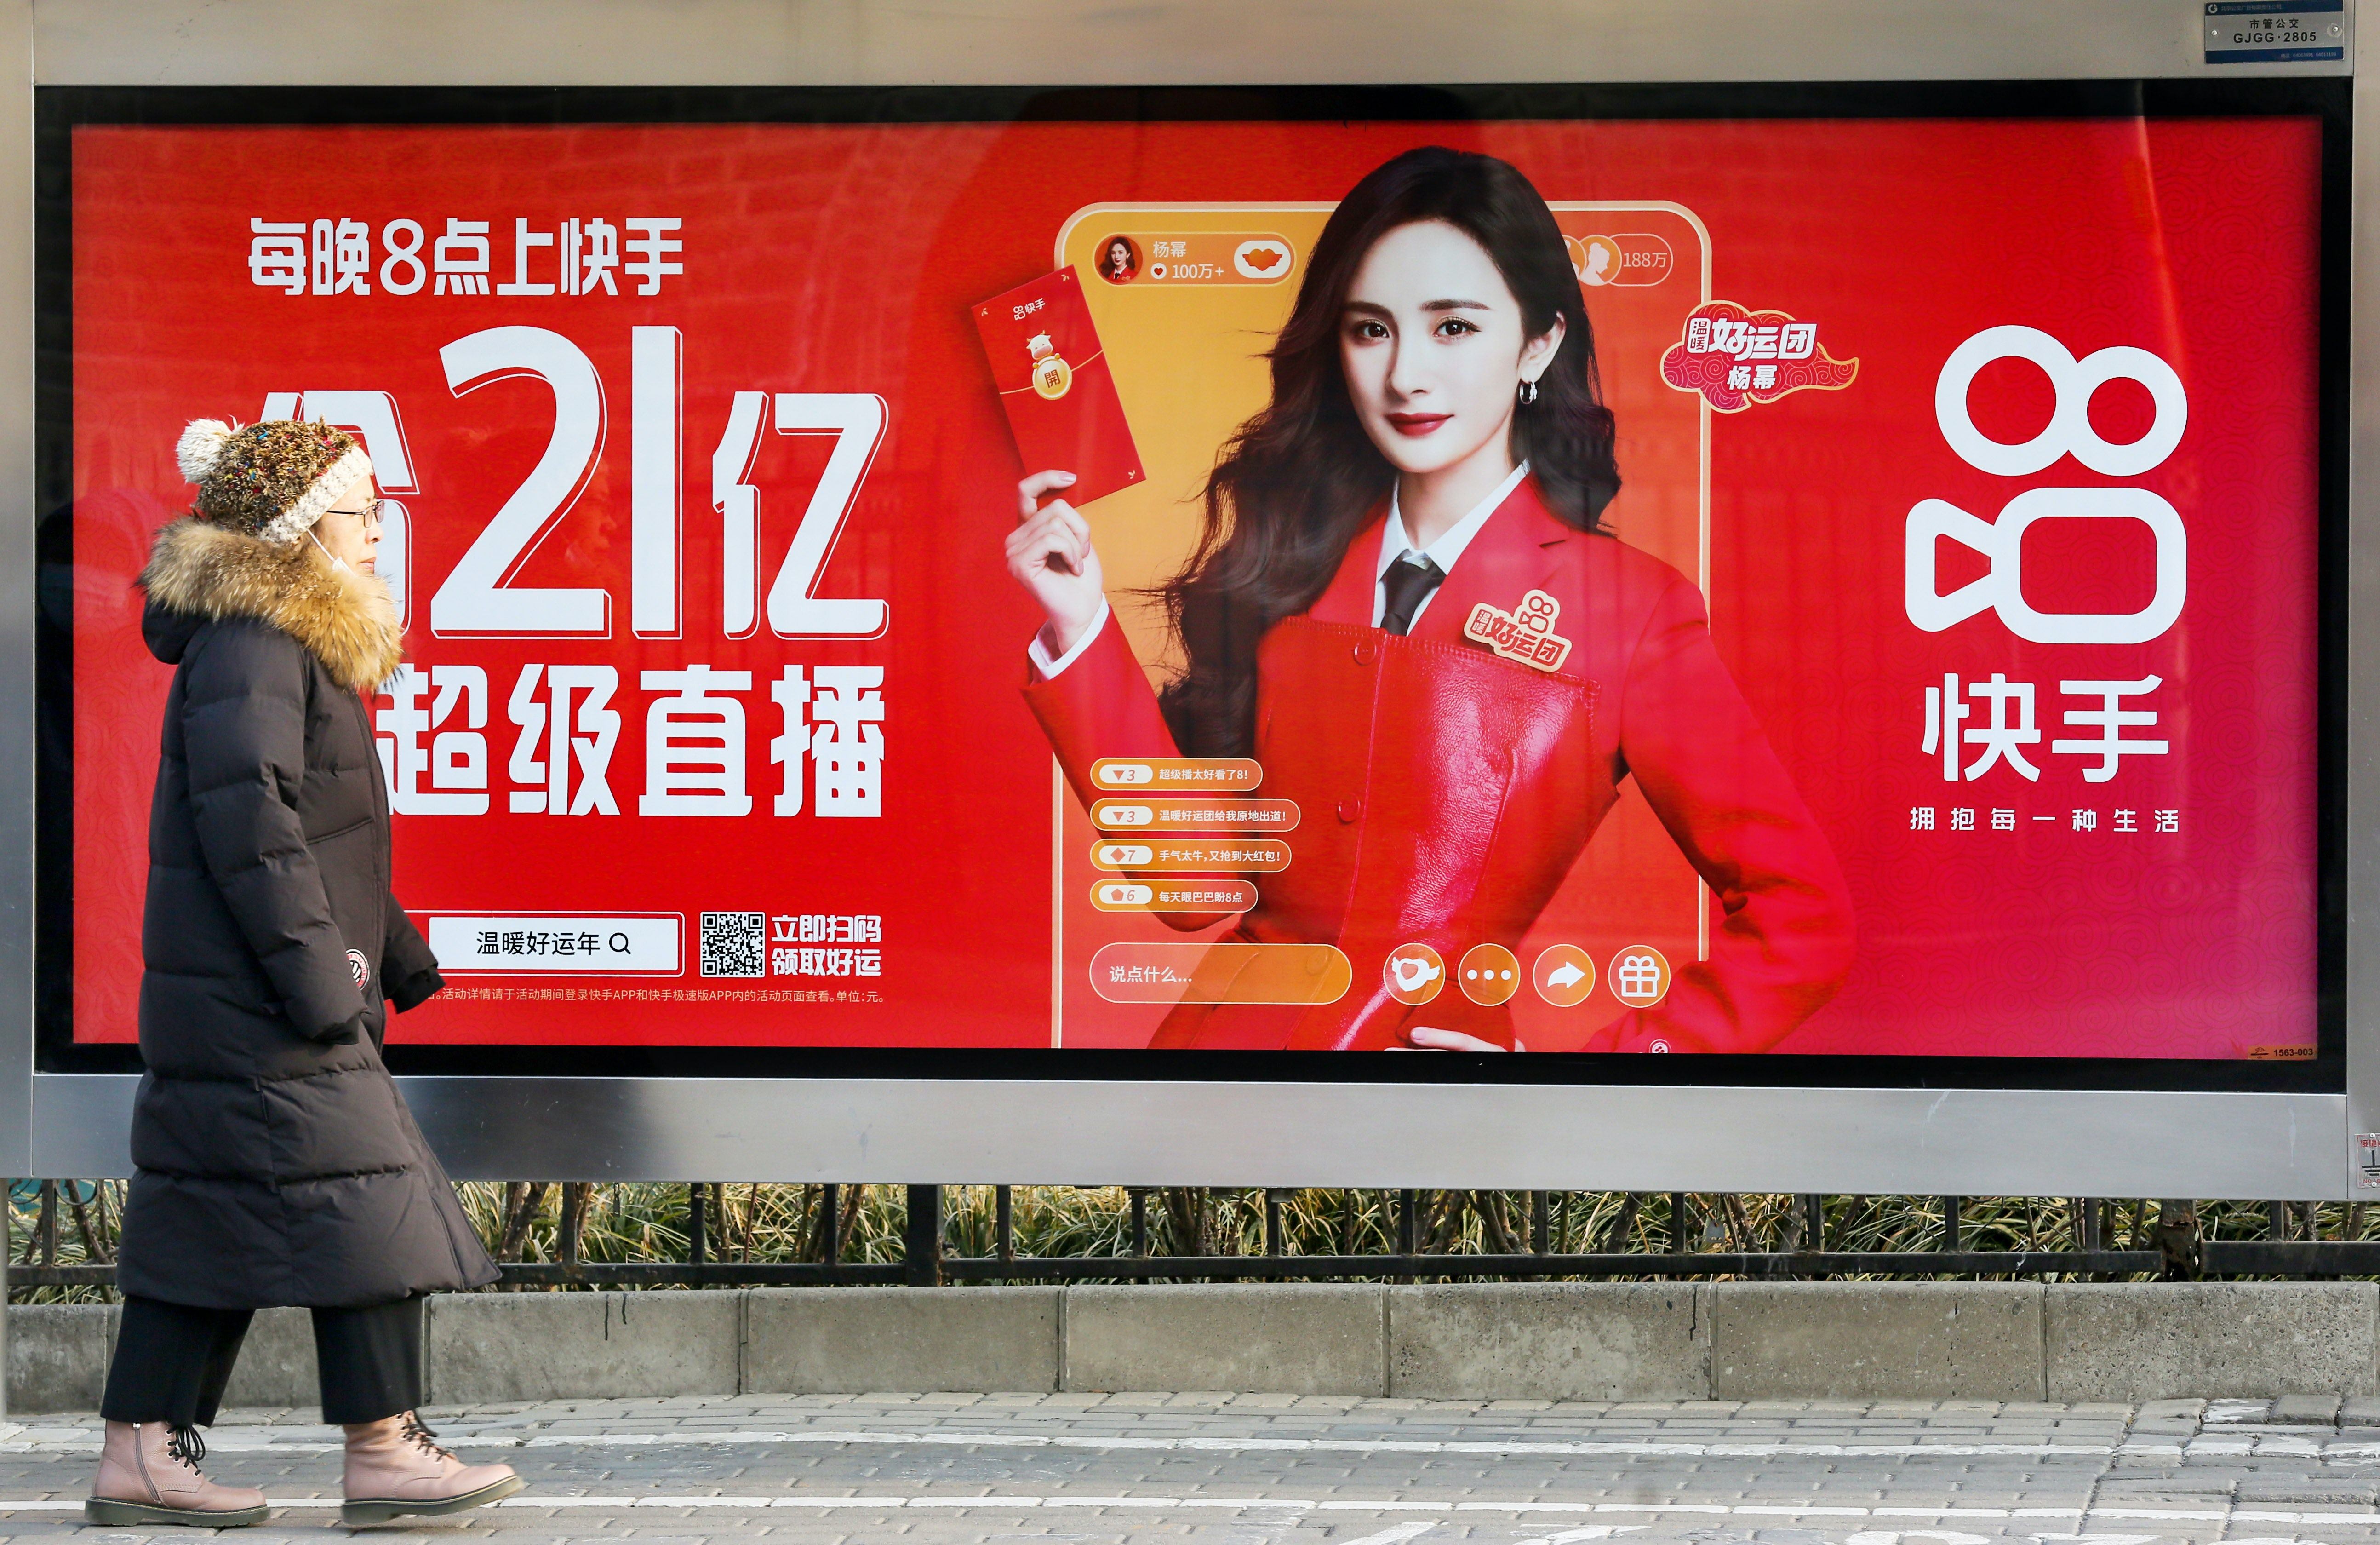 Kuaishou, the operator of China's most popular short-video platform after Douyin, is grappling with an influx of rivals. Getty Images.